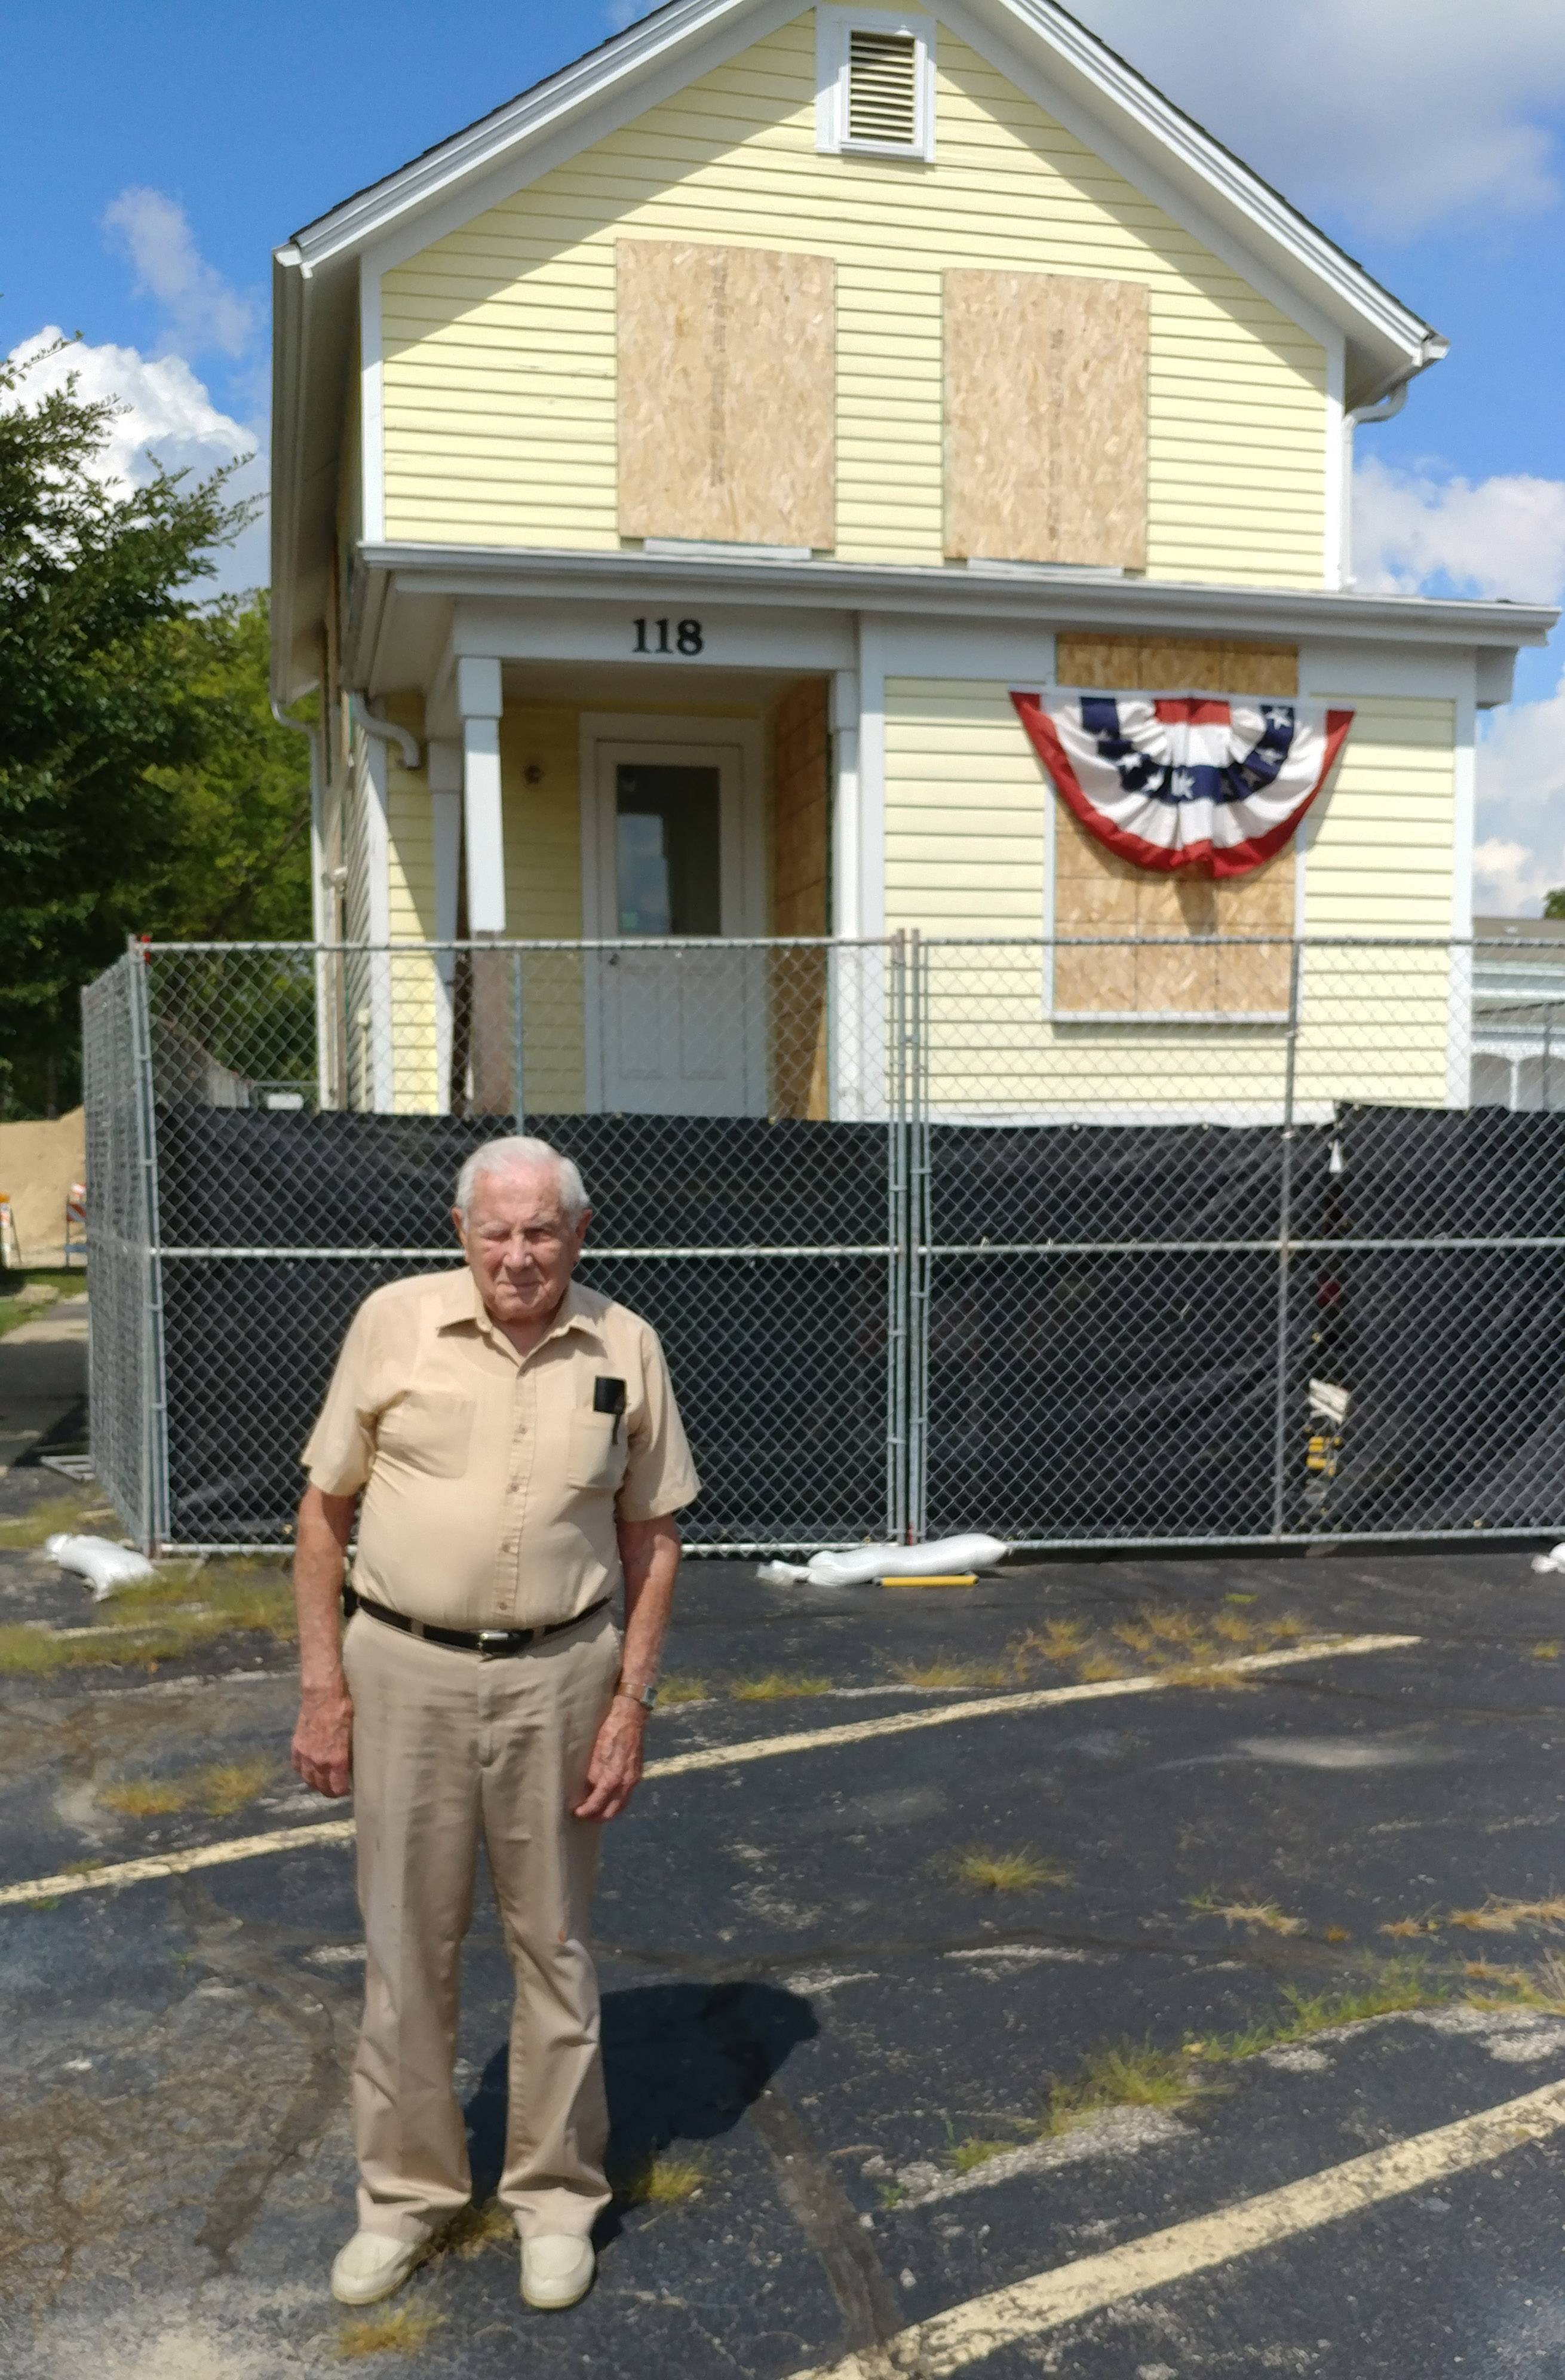 Mel Schroeder, 94, lived in this house at 118 Wool St. in Barrington from when he was 10 days old until he got married in 1946. He'll watch it being moved to Barrington Hills on Sunday. He recently went to see the house in a temporary spot before the move, across the street from where he lived at 118 Wool.